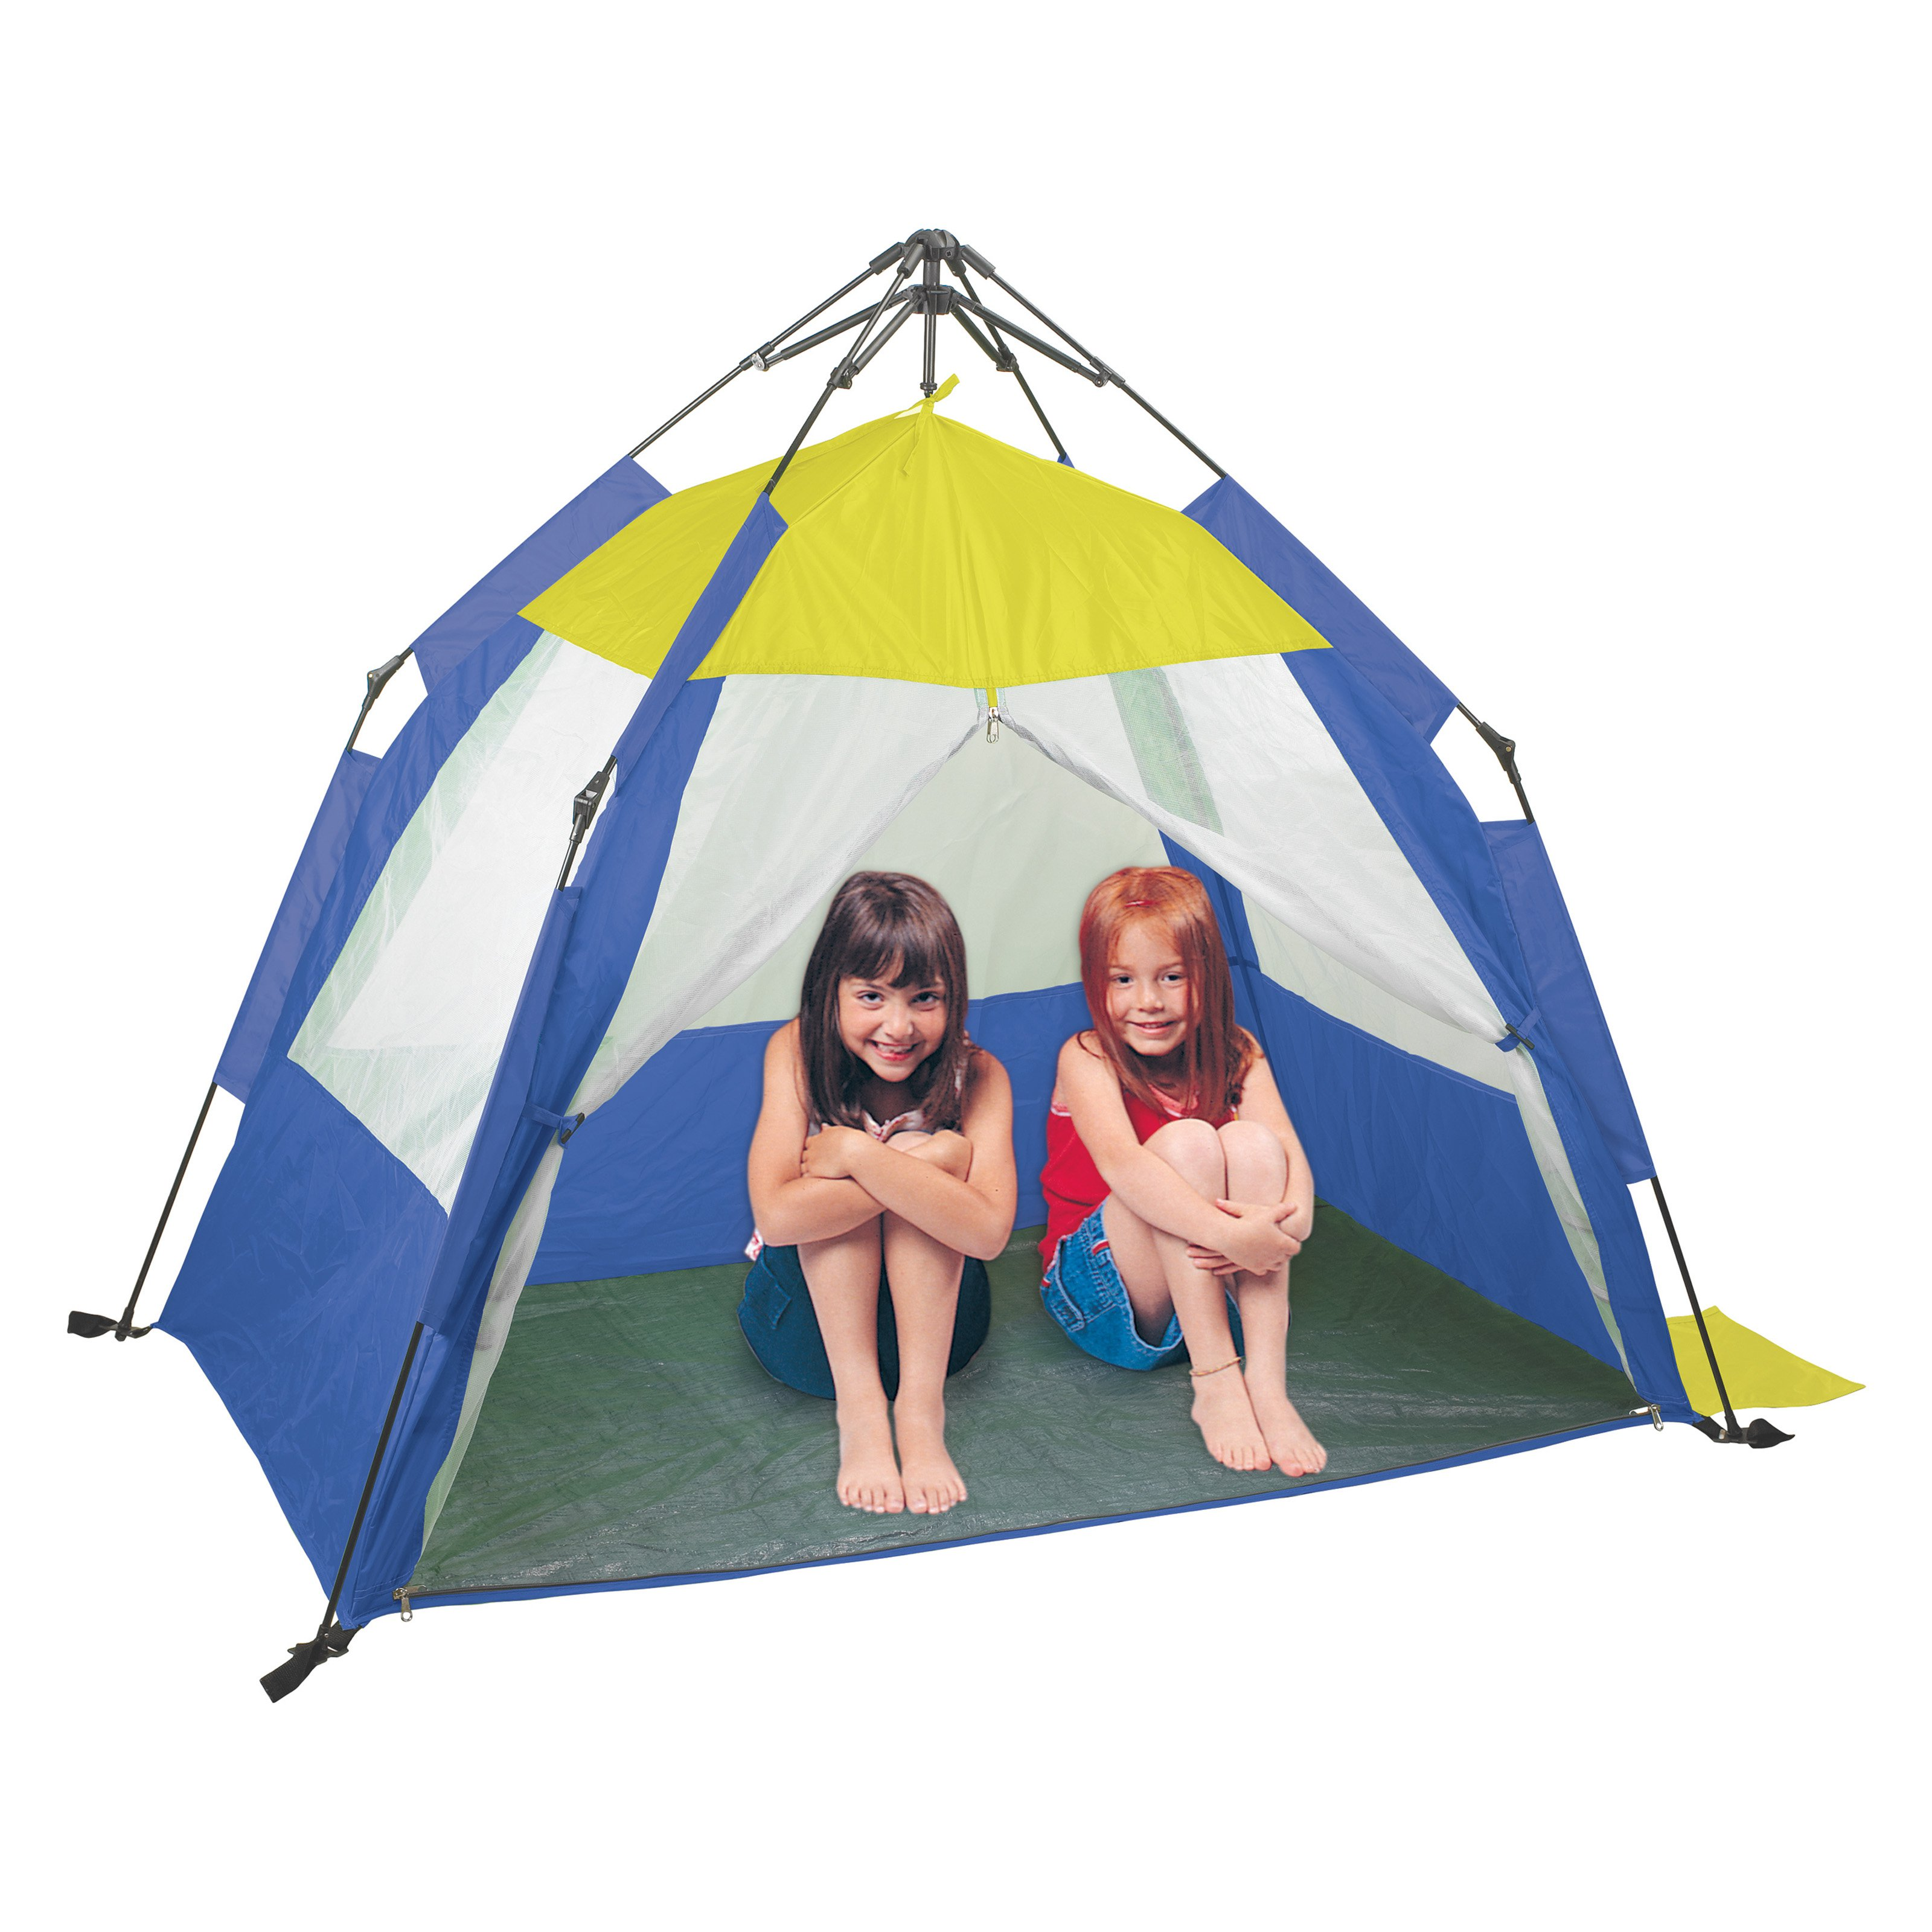 One Touch Cabana - 60L x 35W x 40H in.